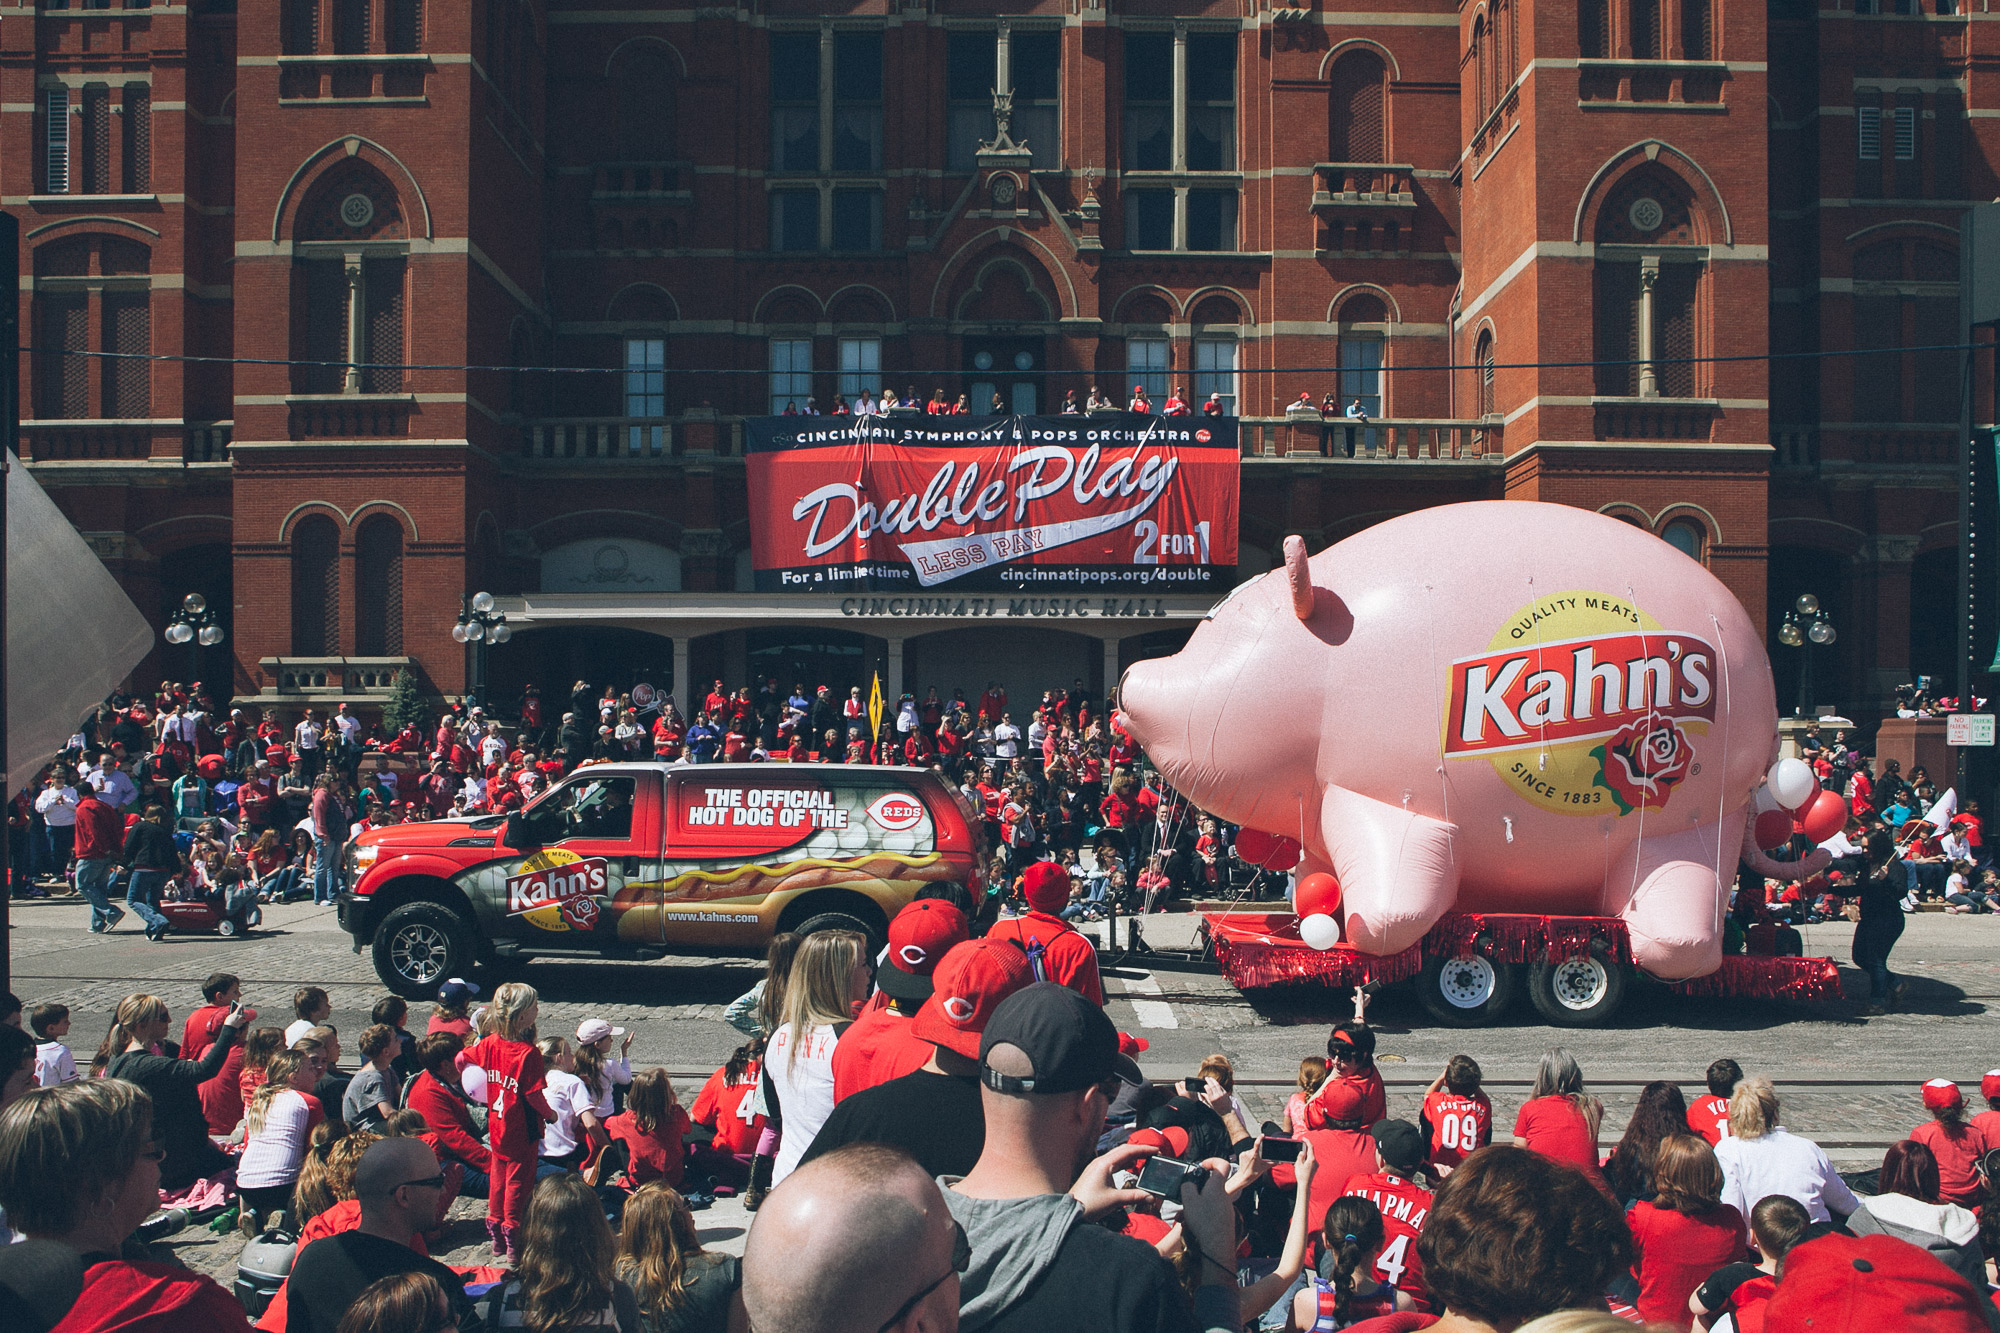 A large pig float in a parade